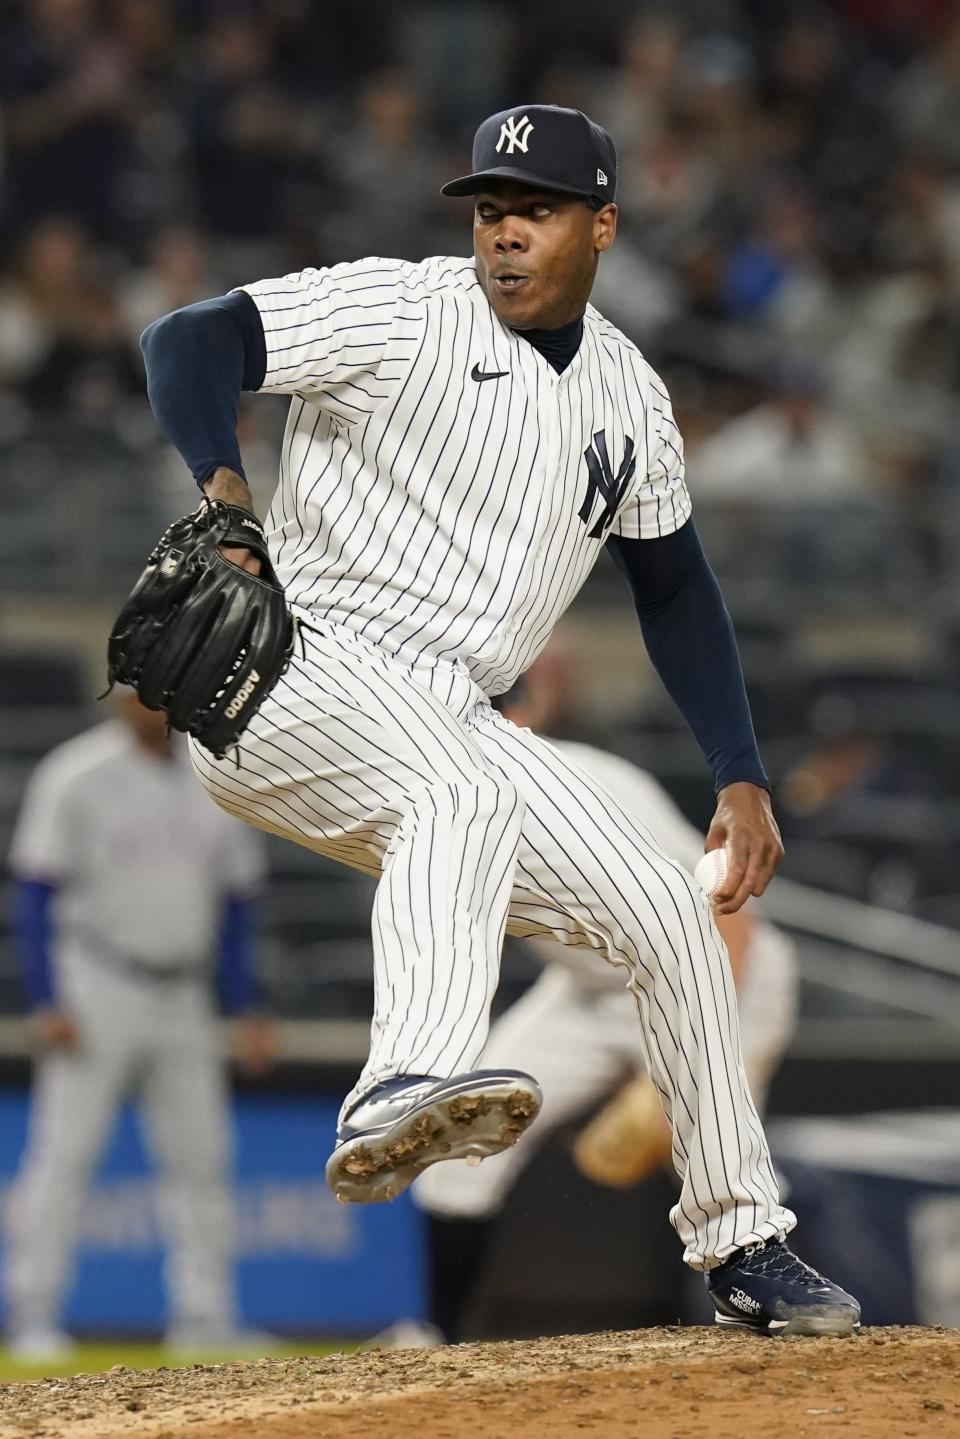 New York Yankees relief pitcher Aroldis Chapman delivers during the ninth inning of a baseball game against the Texas Rangers, Monday, Sept. 20, 2021, in New York. The Yankees won 4-3. (AP Photo/Frank Franklin II)